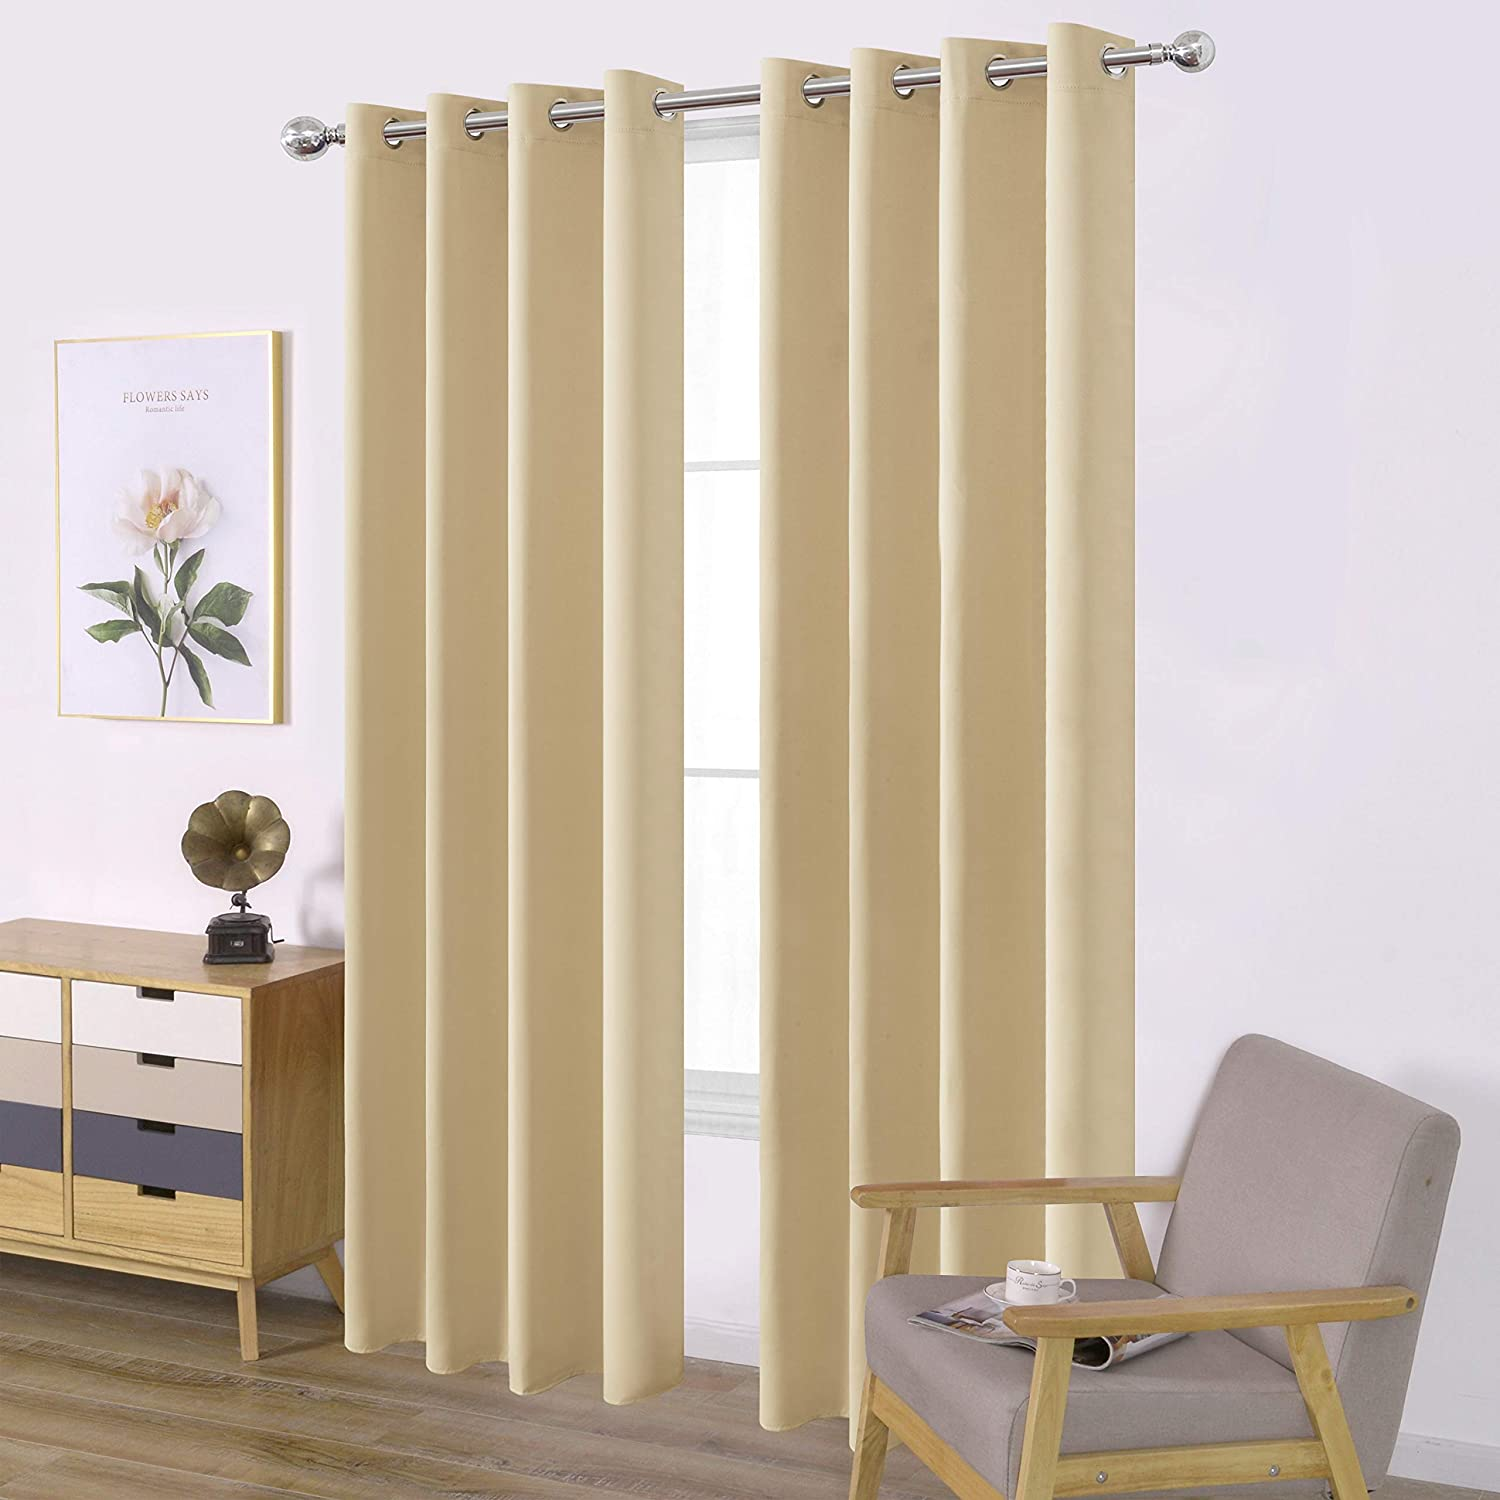 LEMOMO Beige Blackout Curtains for Bedroom Room Darkening Curtains/Draperies Thermal Insulated Living Room Curtains Beige Curtains Set of 2 Panels (52 x 84 Inch, Beige)